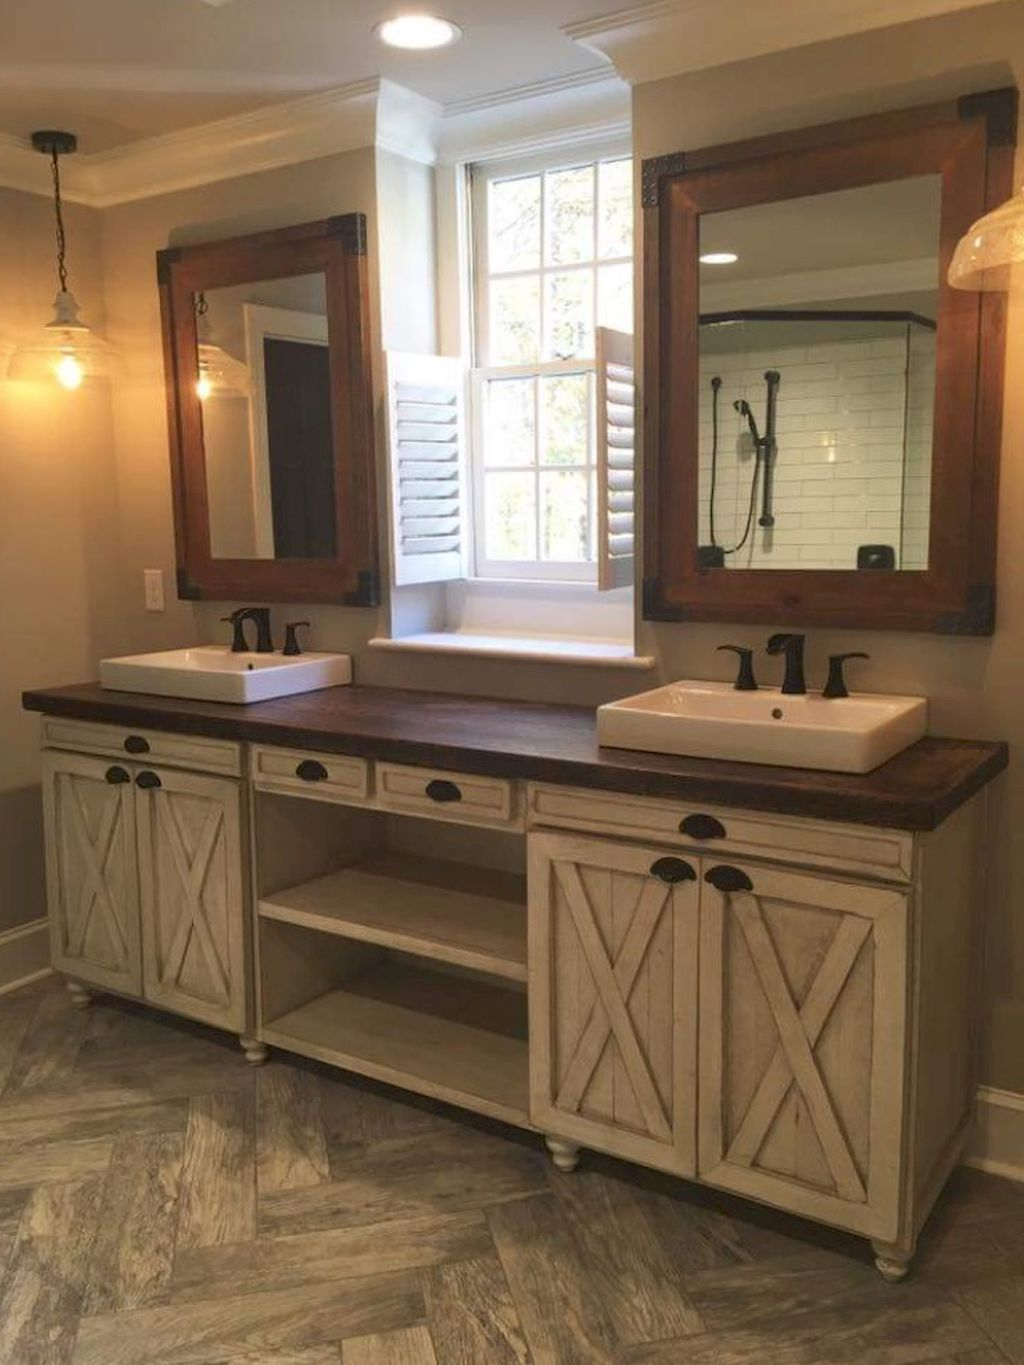 Rustic Farmhouse Master Bathroom Remodel Ideas 4 In 2019 Home Renovation Projects